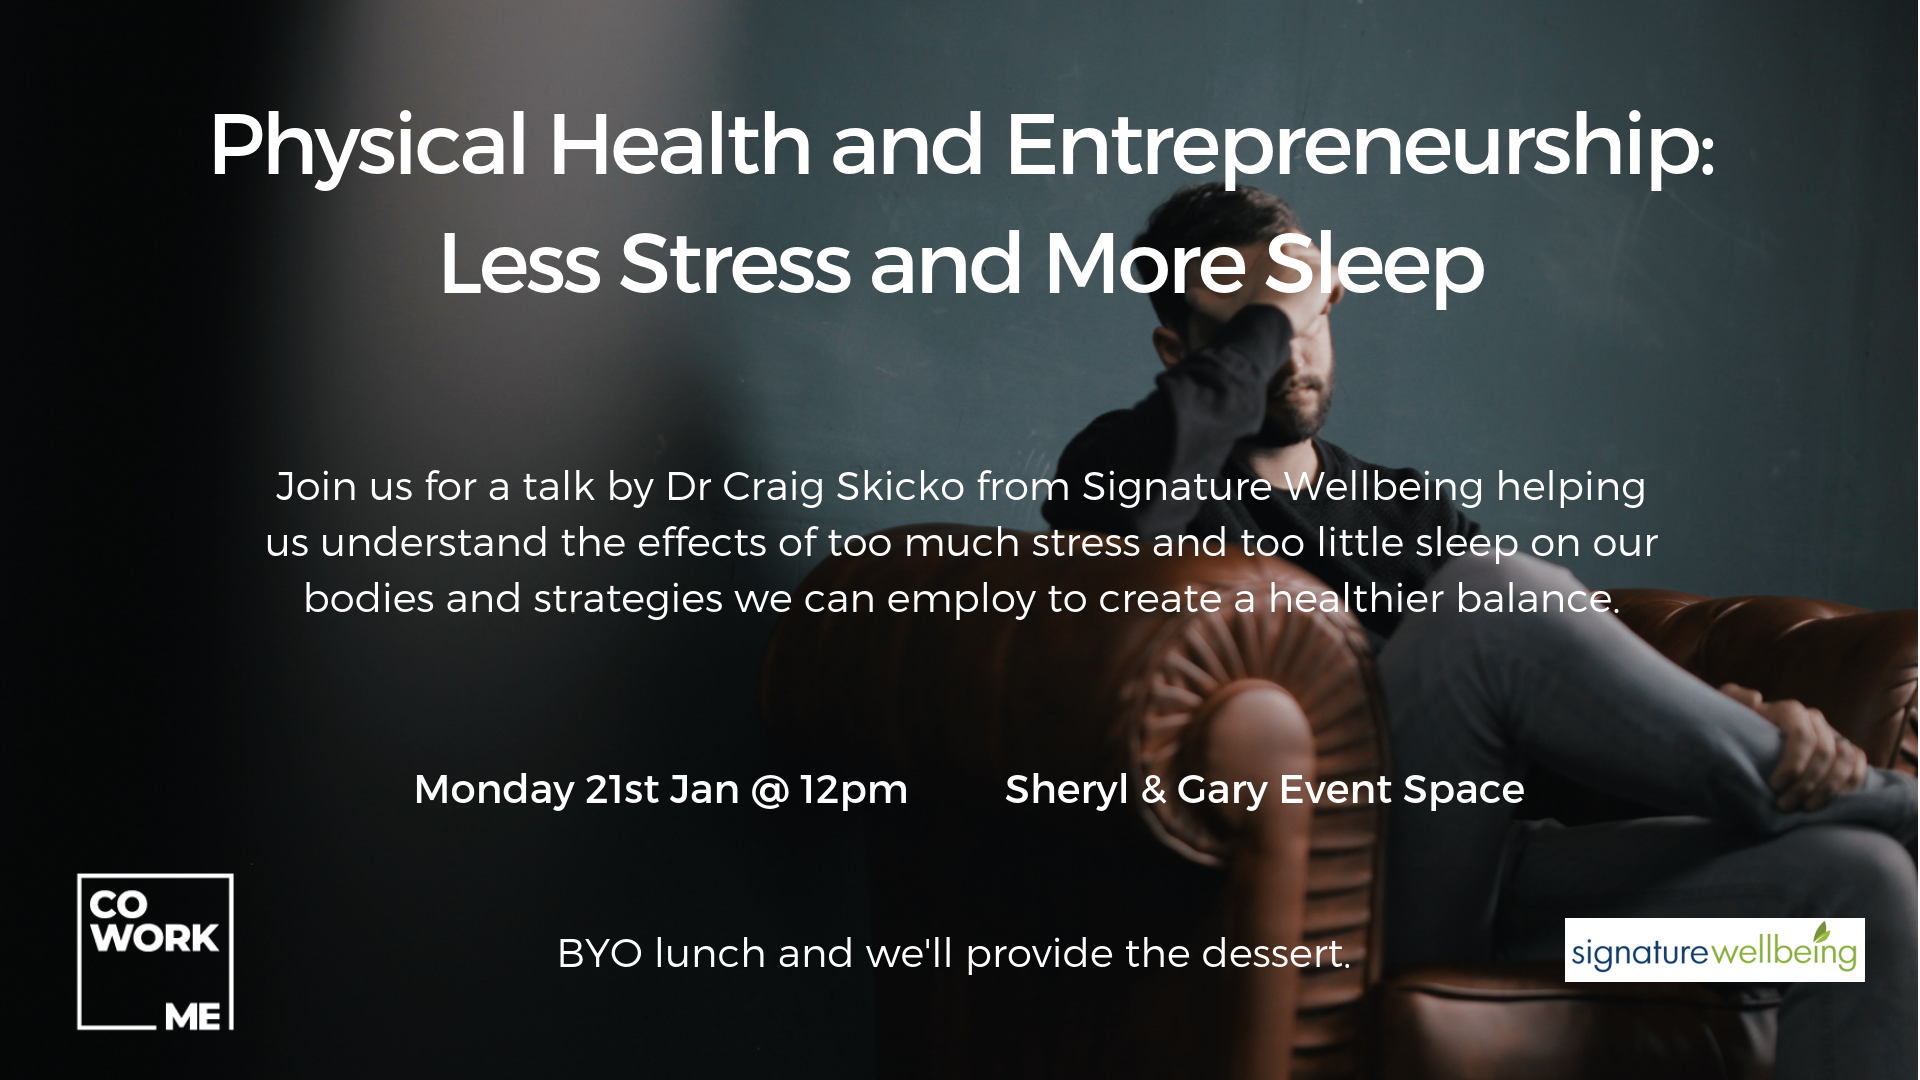 Physical Health and Entrepreneurship: Less Stress and More Sleep